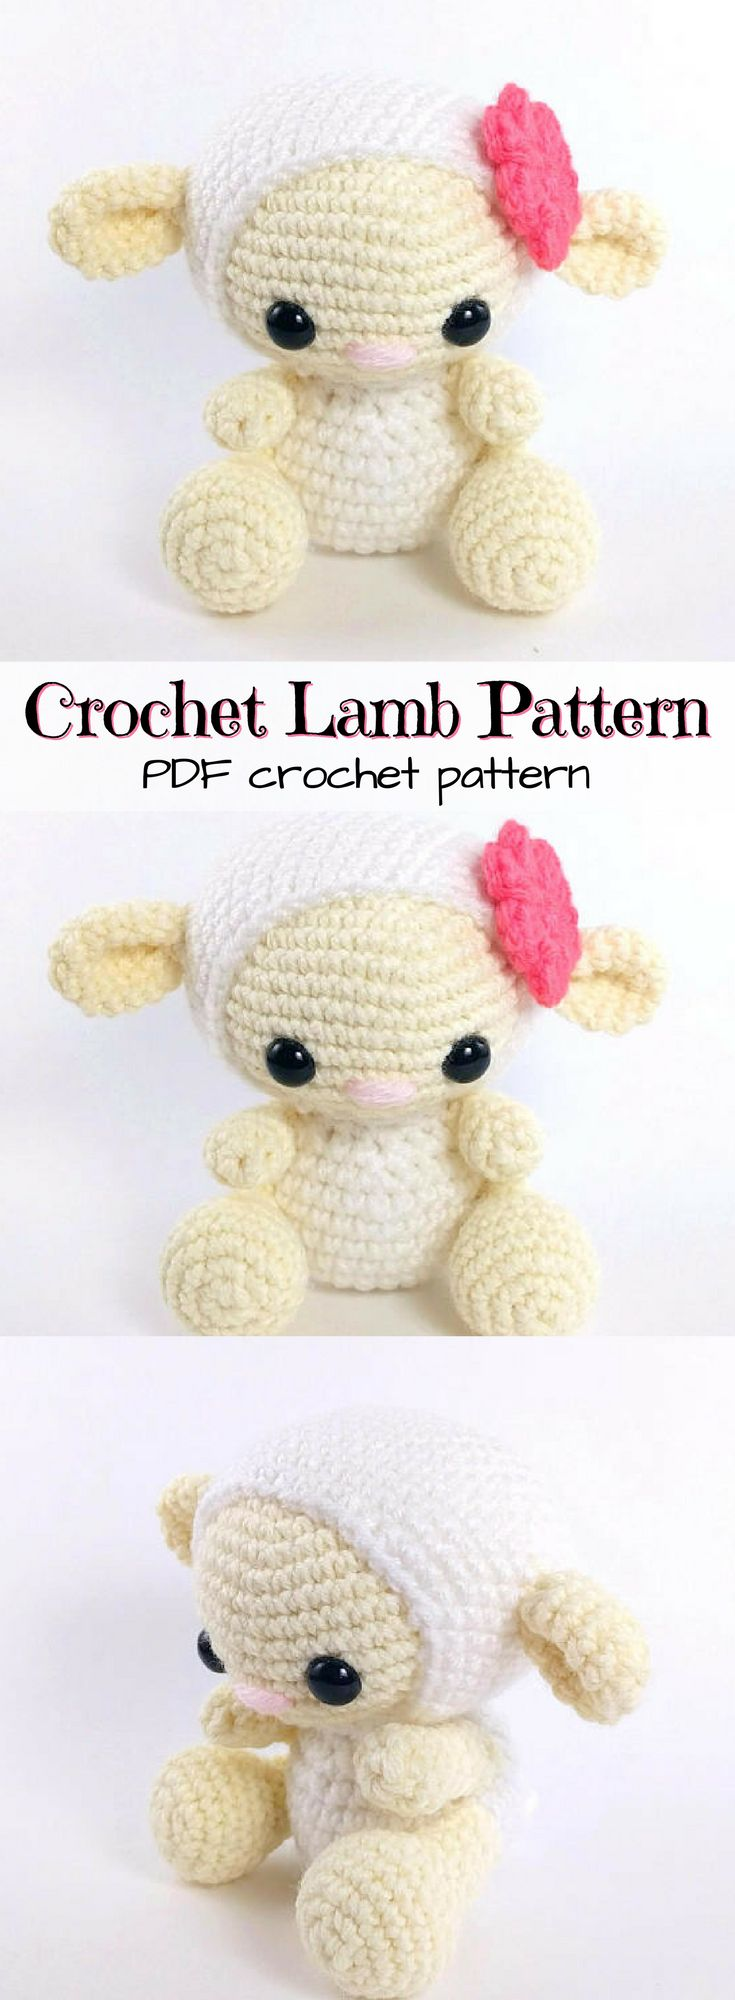 SO CUTE!!! I love this little lamb crochet pattern! Perfect for easter or spring babies! LOVE IT! #etsy #ad #amigurumi #stuffies #crochet #pattern #pdf